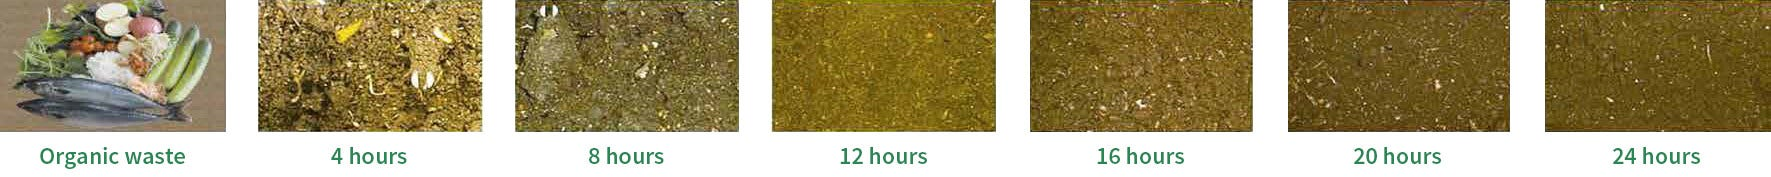 composting cycle 24 hours